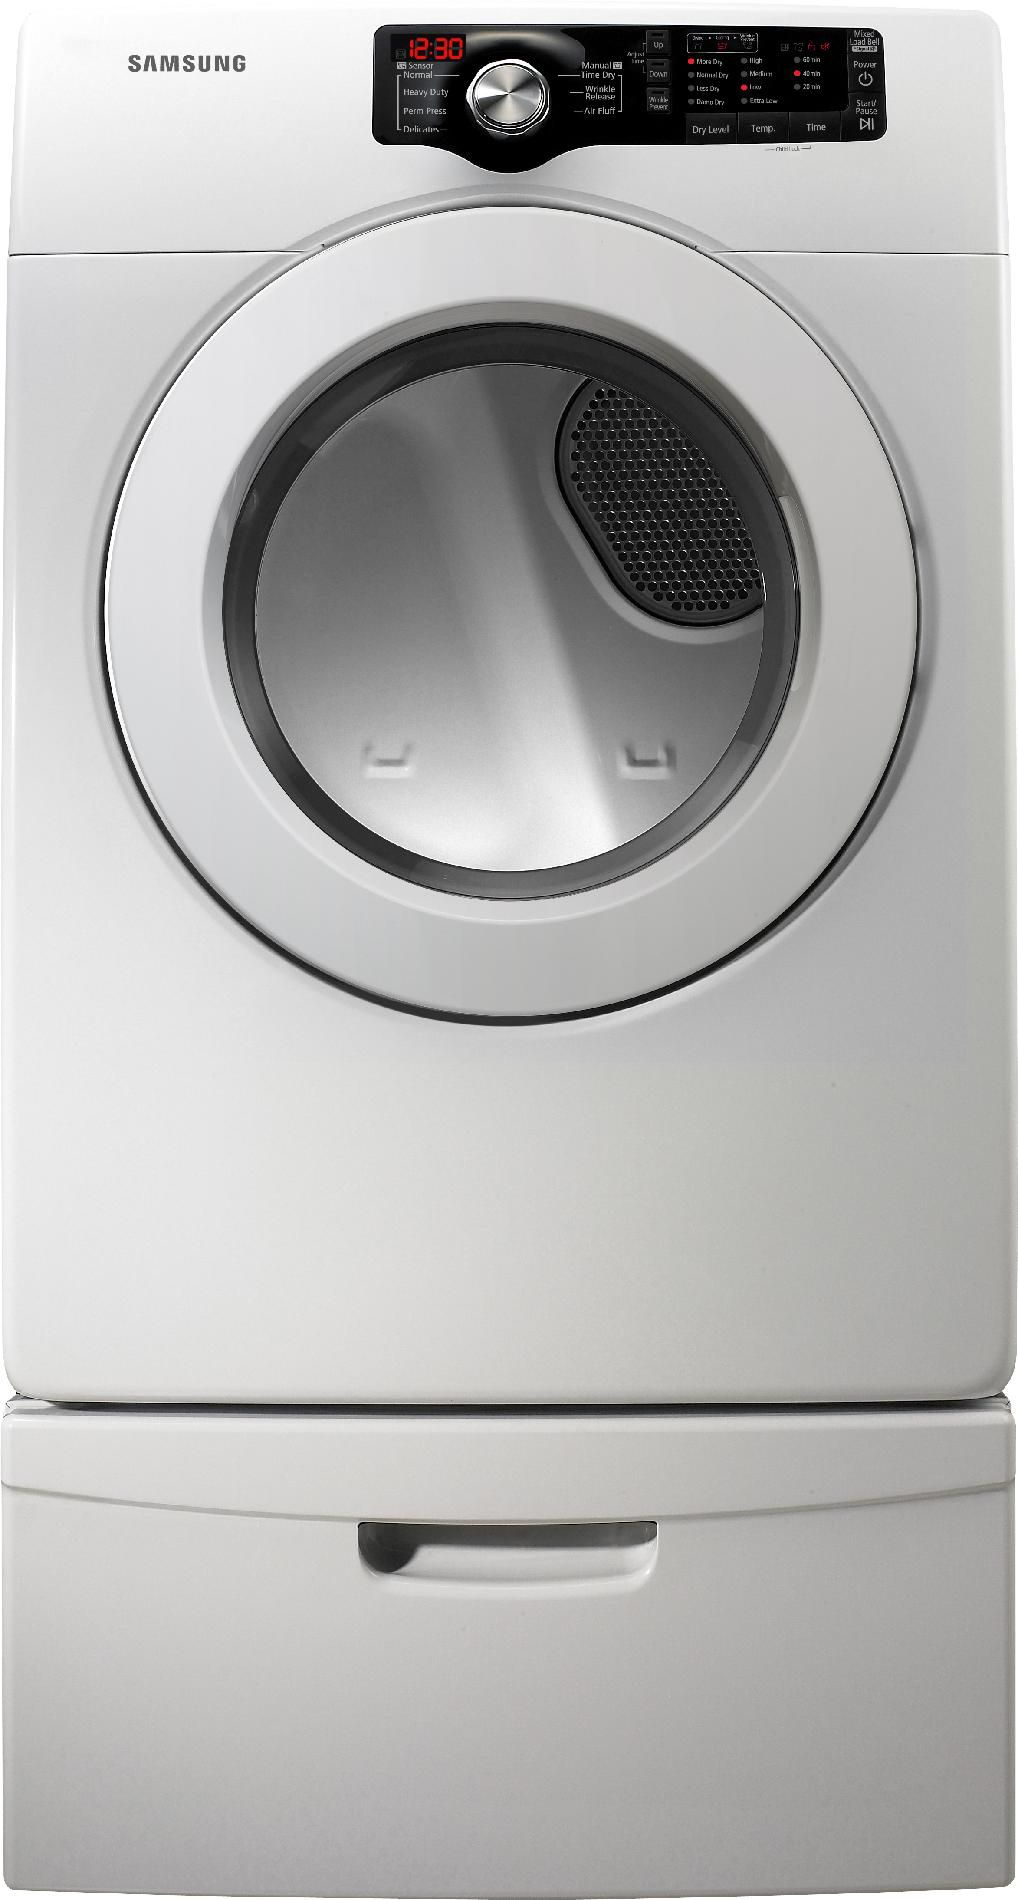 Samsung 7.3 cu. ft. Gas Dryer - White